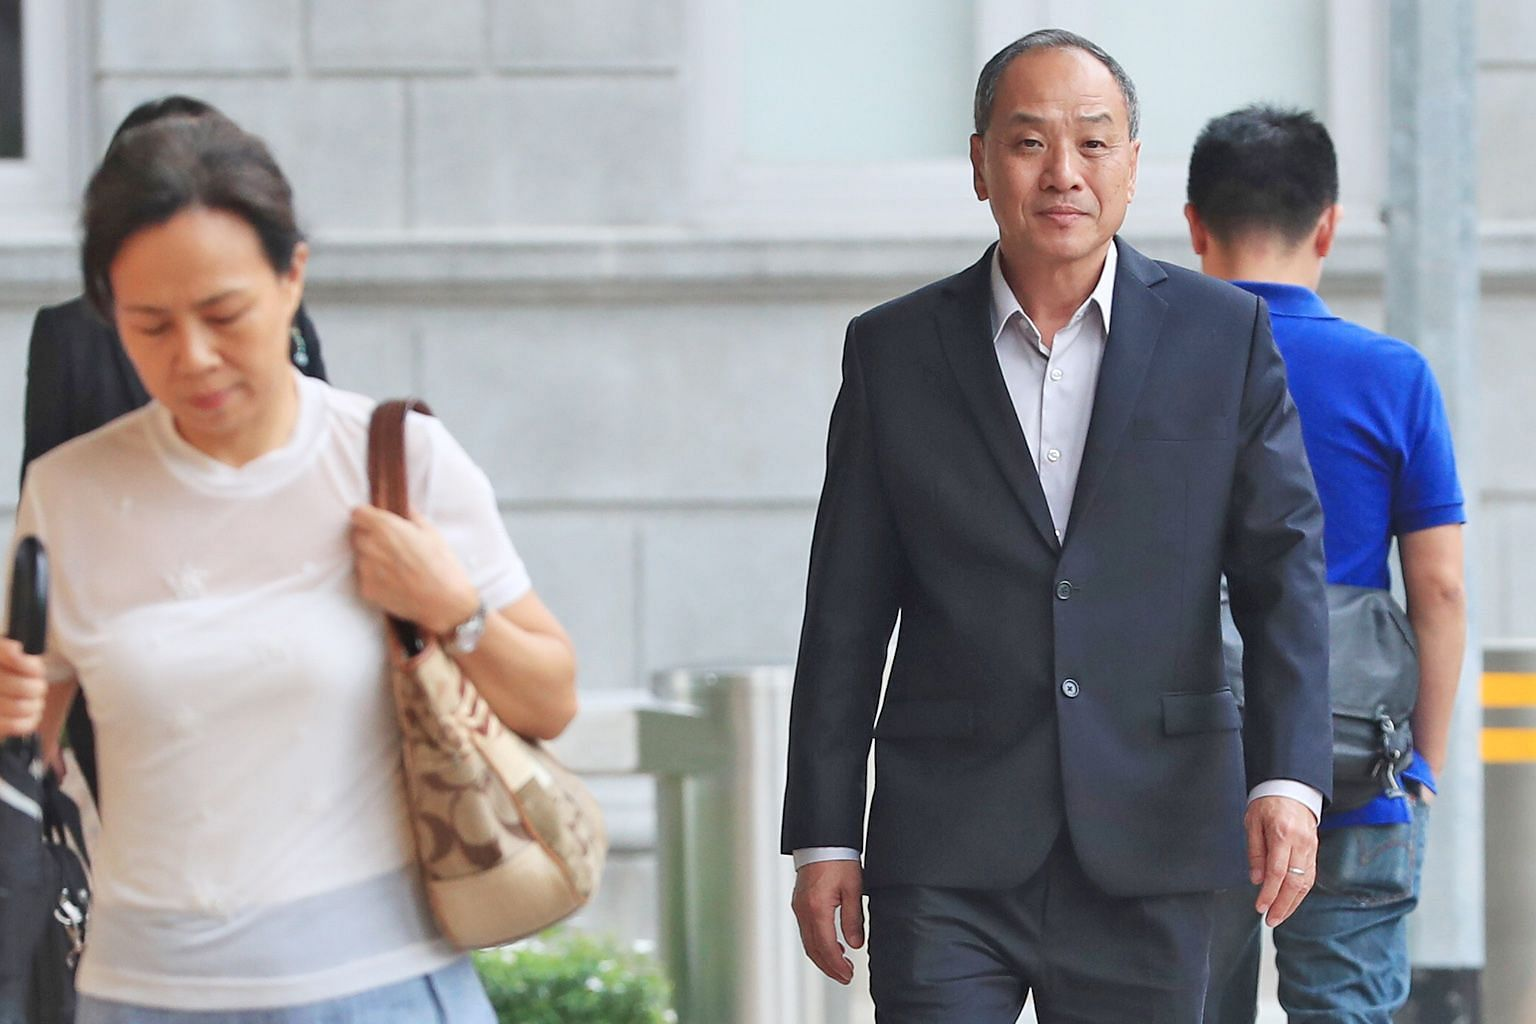 """Former Workers' Party chief Low Thia Khiang, seen here on his way to court yesterday, said it had not crossed his mind whether a tender should be called, and disagreed with Senior Counsel Davinder Singh that calling a tender would have """"upset the pla"""